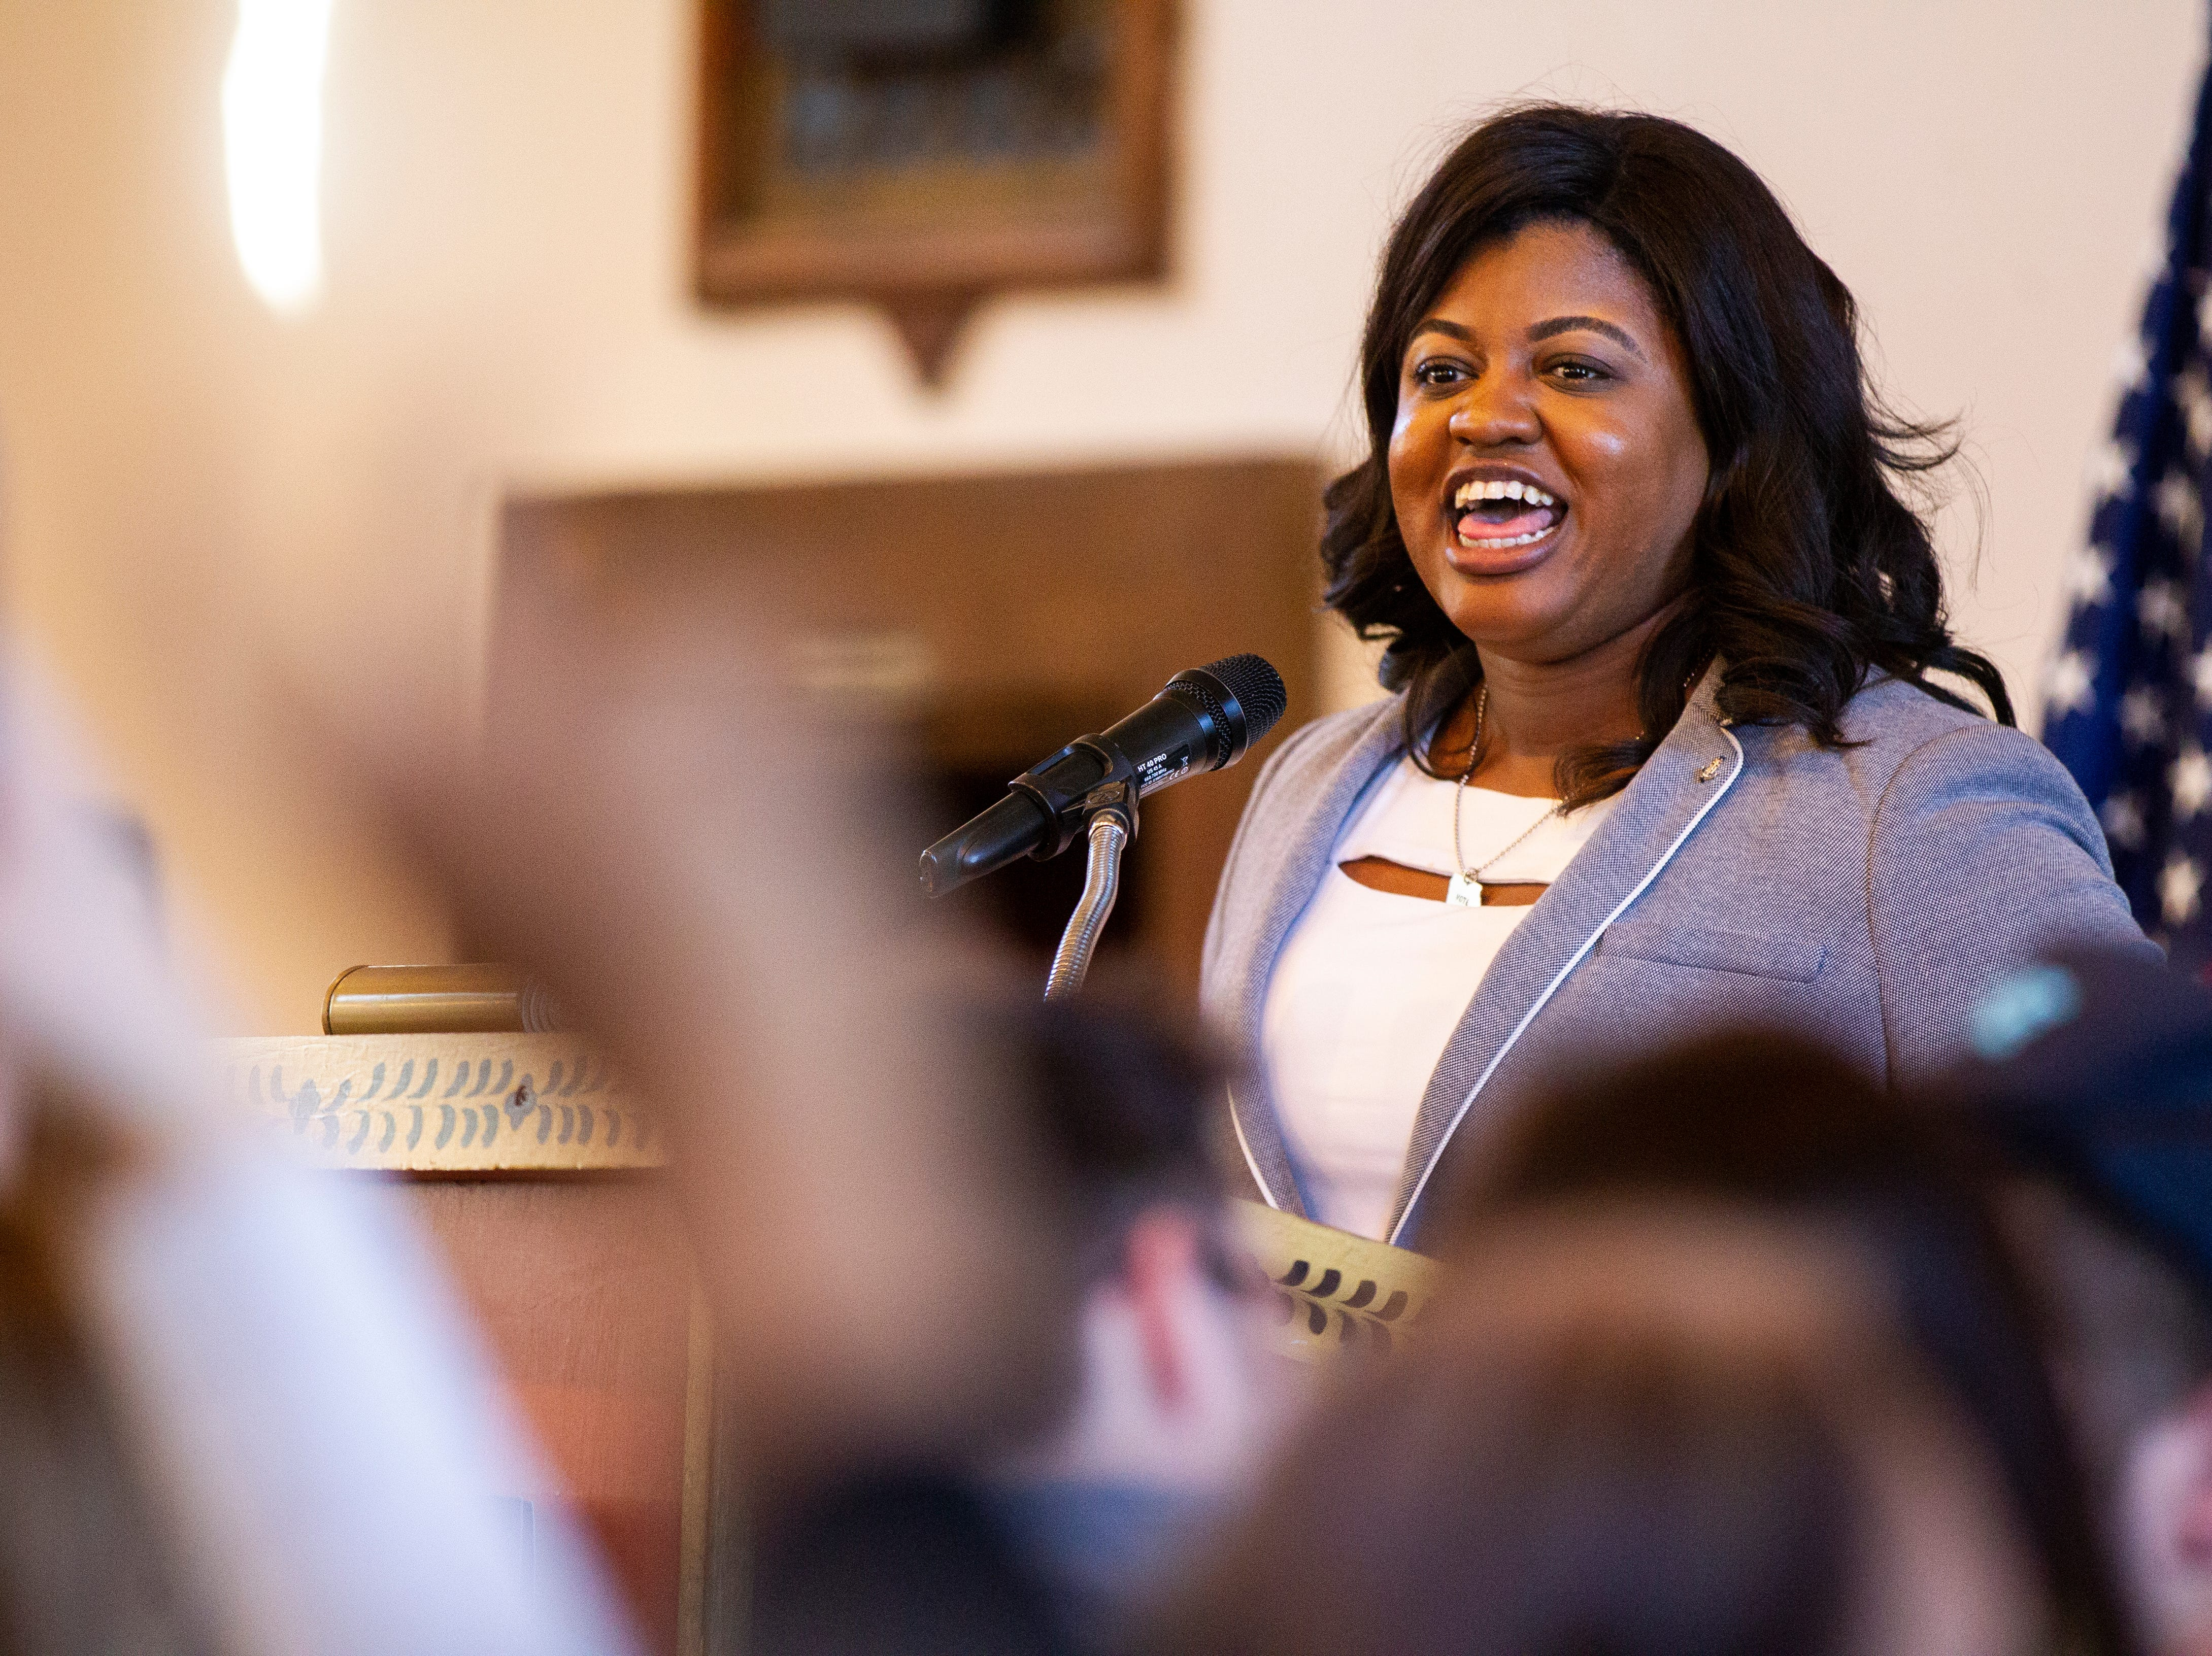 """Deidre DeJear, Iowa Secretary of State candidate, speaks during a """"All Hands on Deck"""" event on Tuesday, Oct. 23, 2018, at Old Brick in Iowa City."""